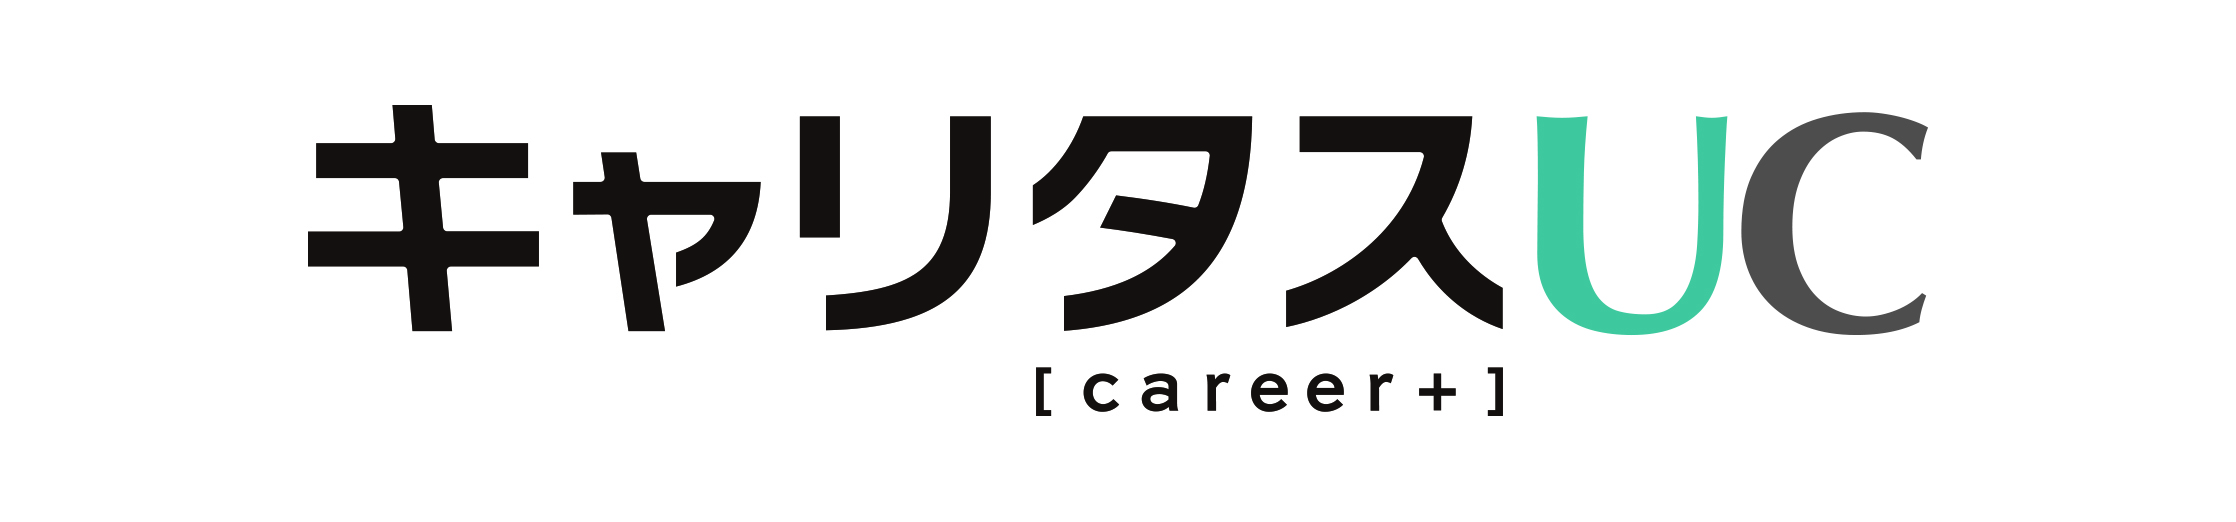 career-tasu